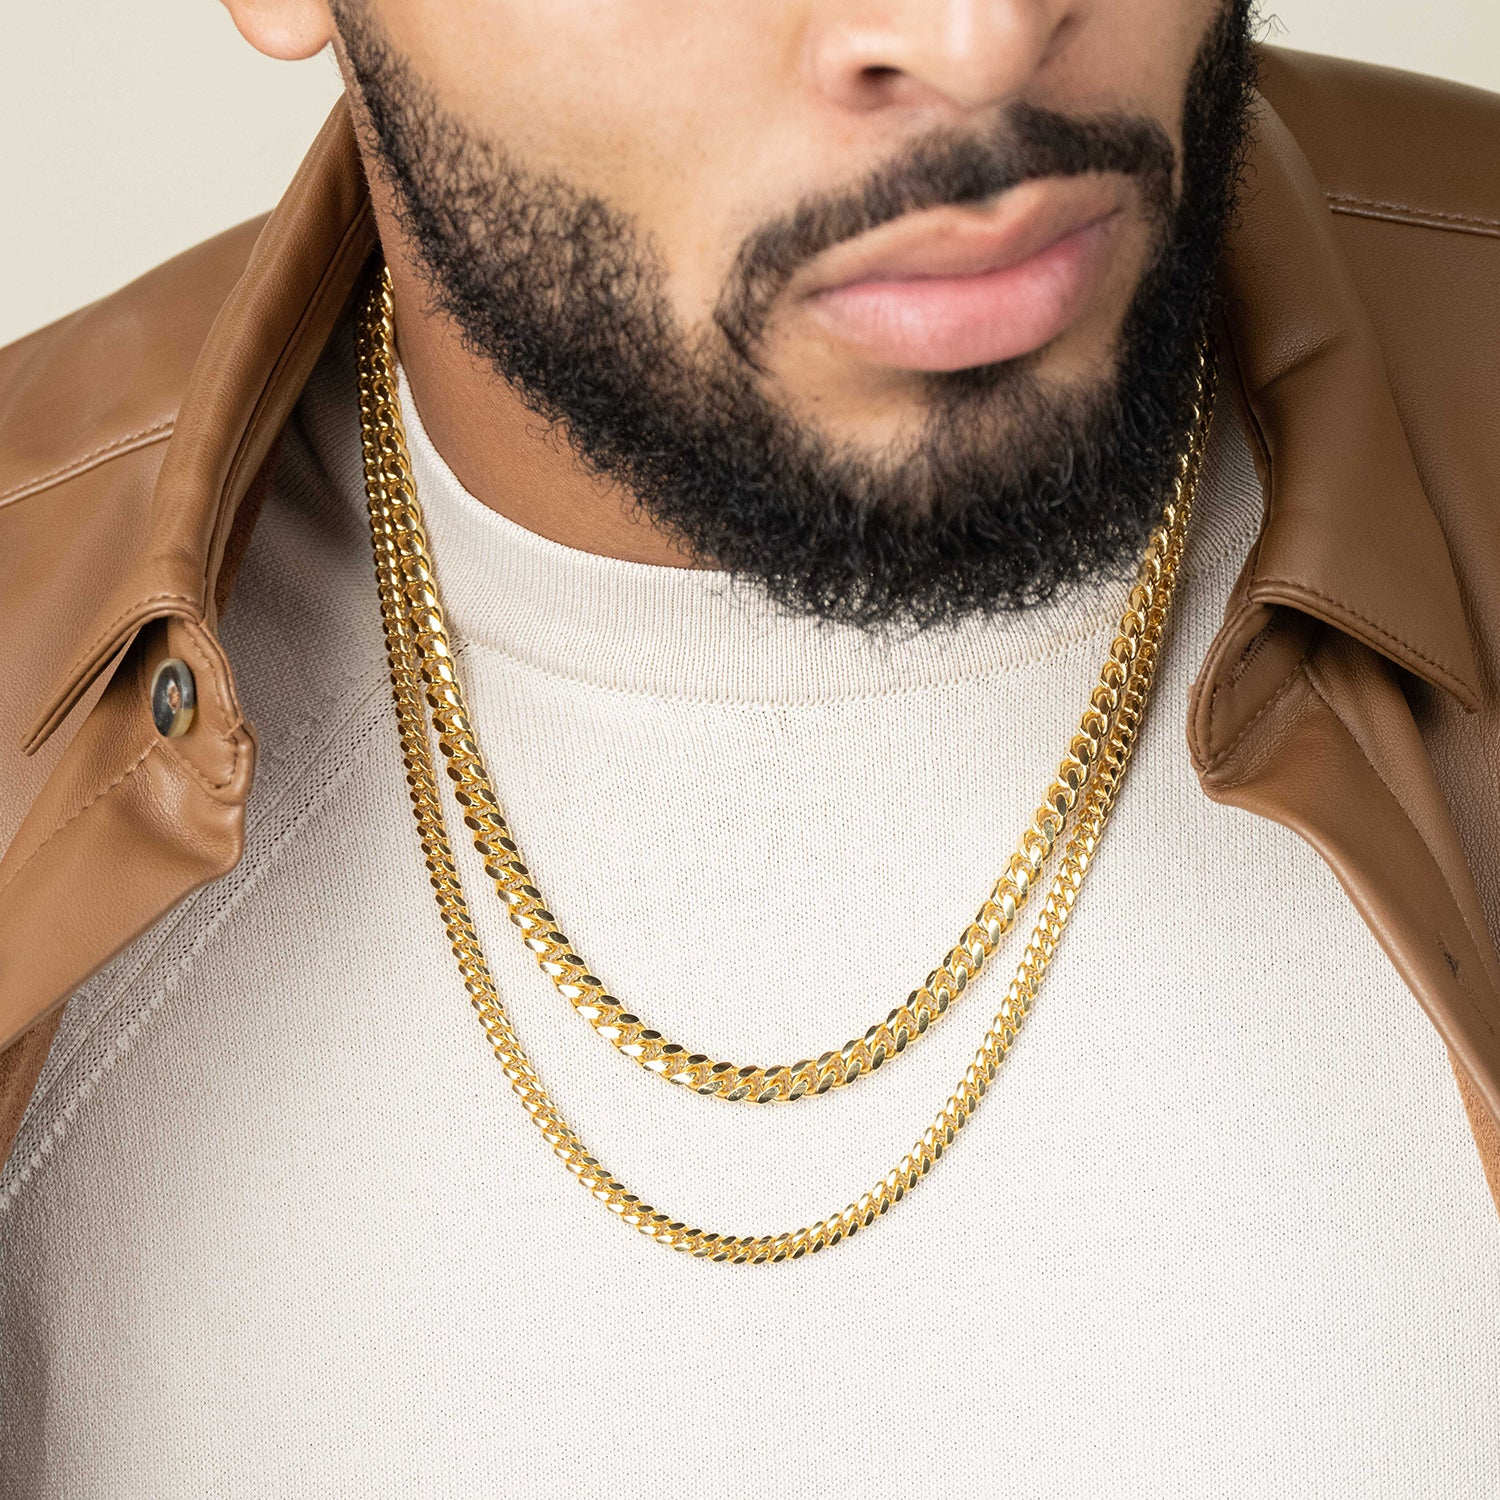 Cuban Link Chain Stack - 7mm + 5mmImage